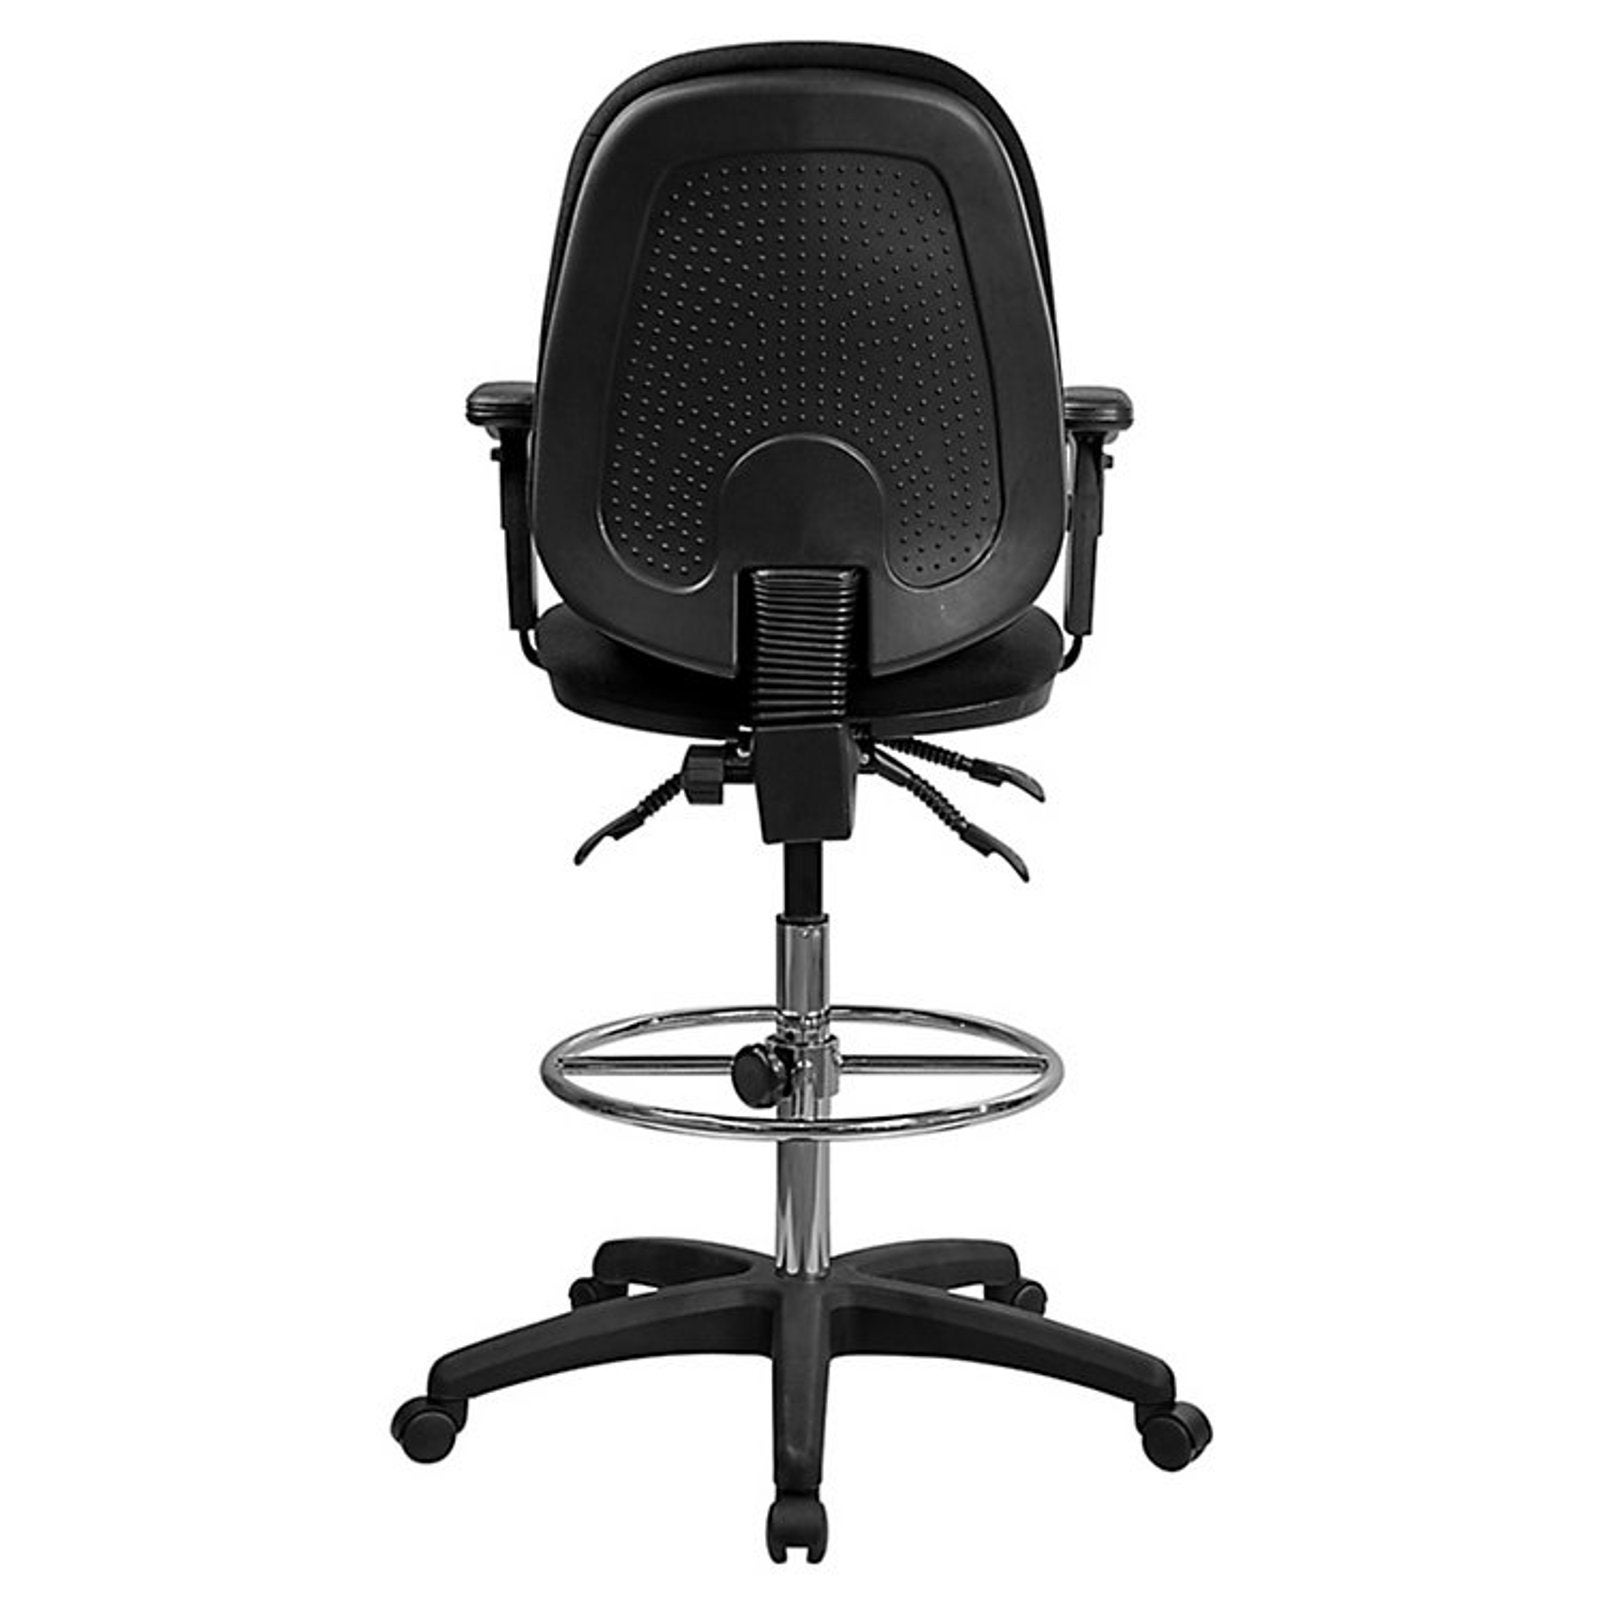 office drafting chair. Black Fabric Multifunctional Office Drafting Chair - Free Shipping Today Overstock 20420508